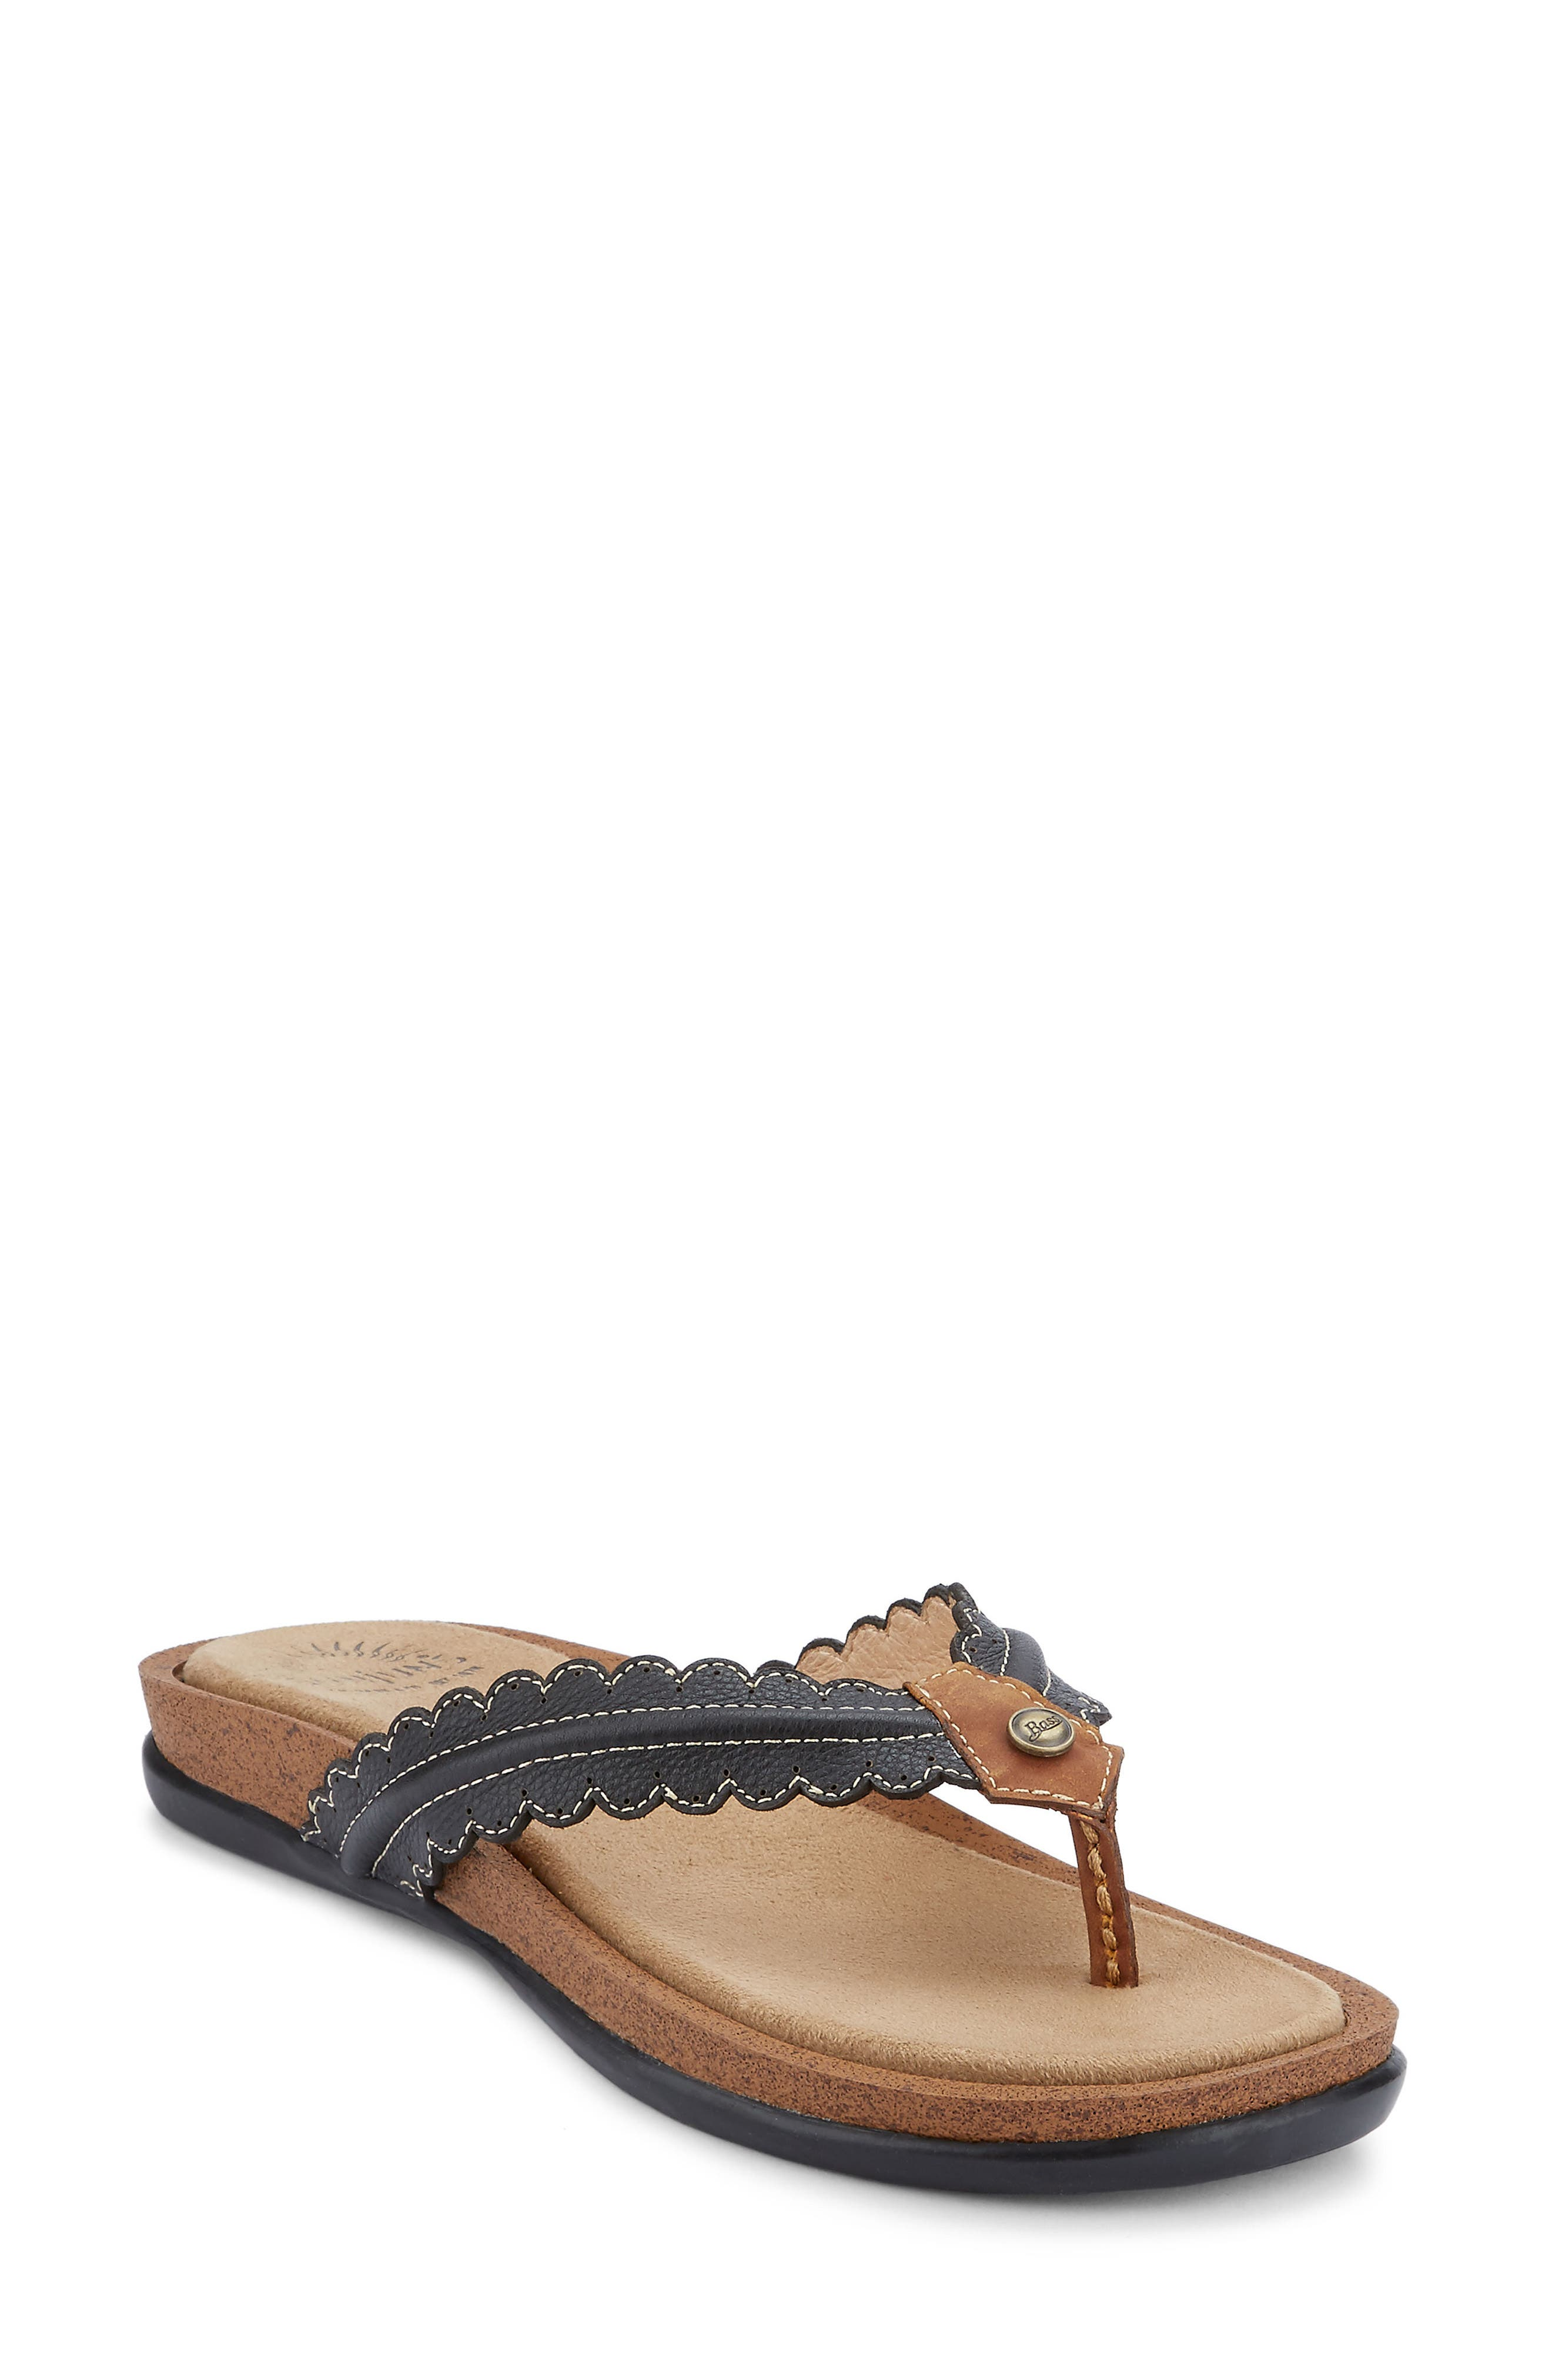 G.H. Bass and Co. Samantha Thong Sandal,                         Main,                         color,